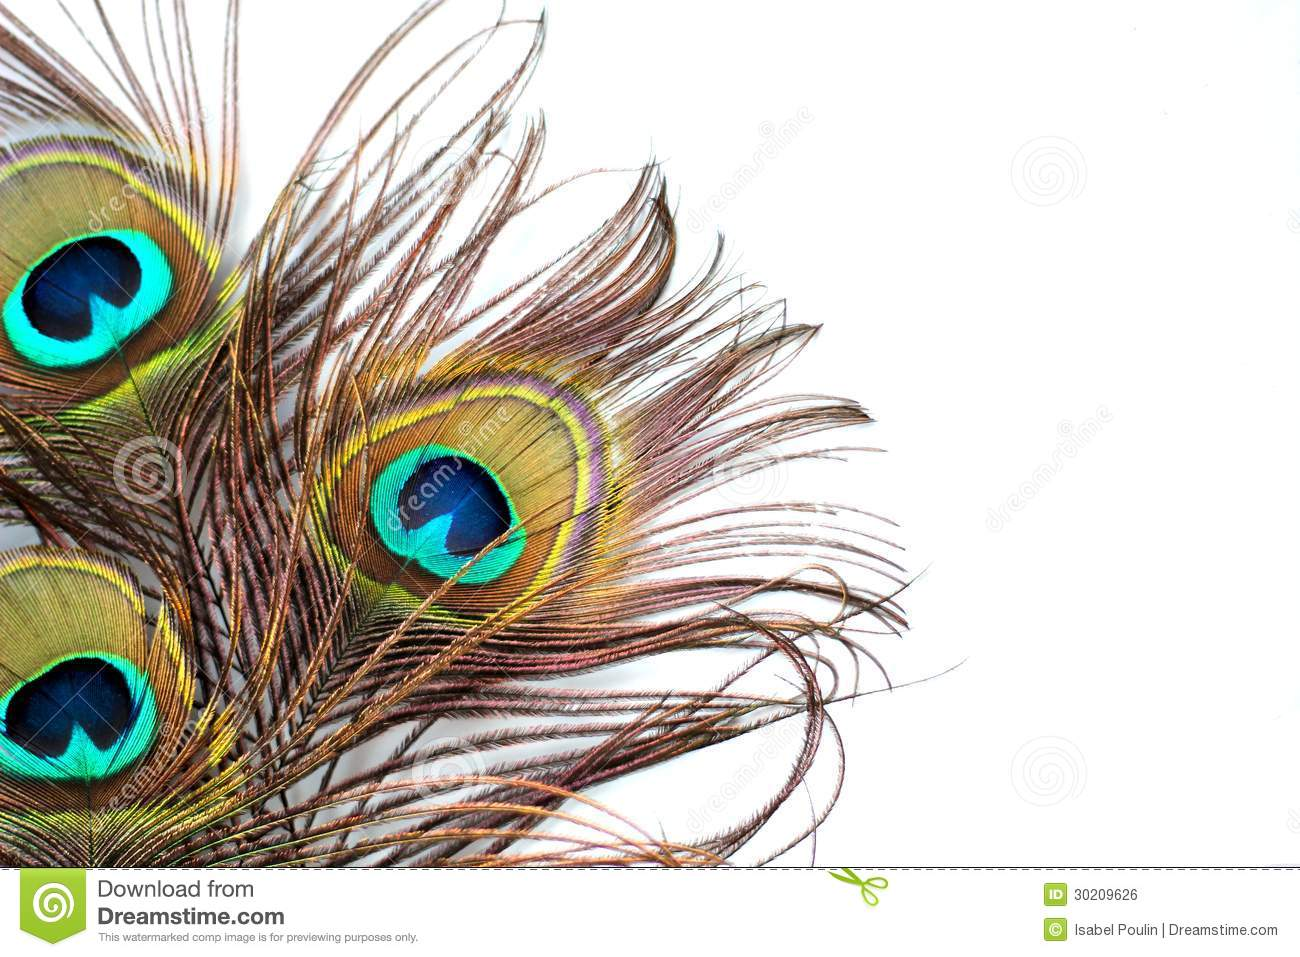 Peacock Feathers Royalty Free Stock Image Image 30209626